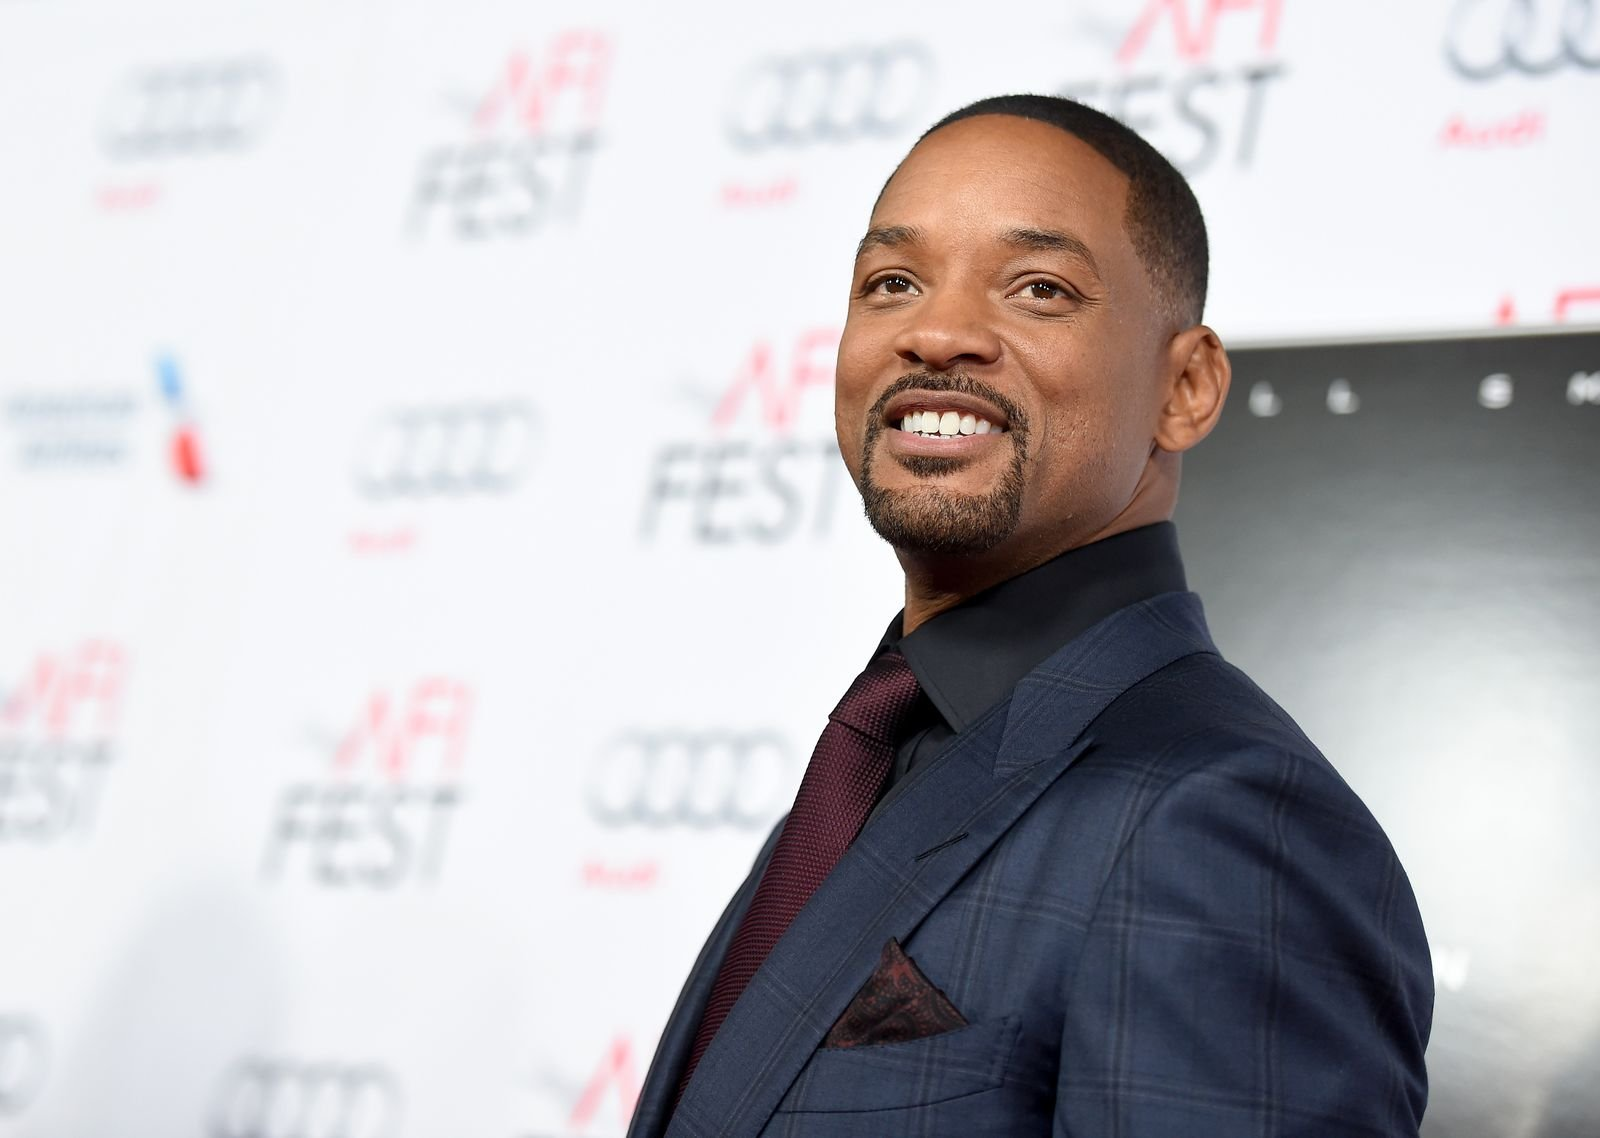 Will Smith at the Centerpiece Gala Premiere of Concussion during AFI FEST 2015 in California/ Photo:Getty Images